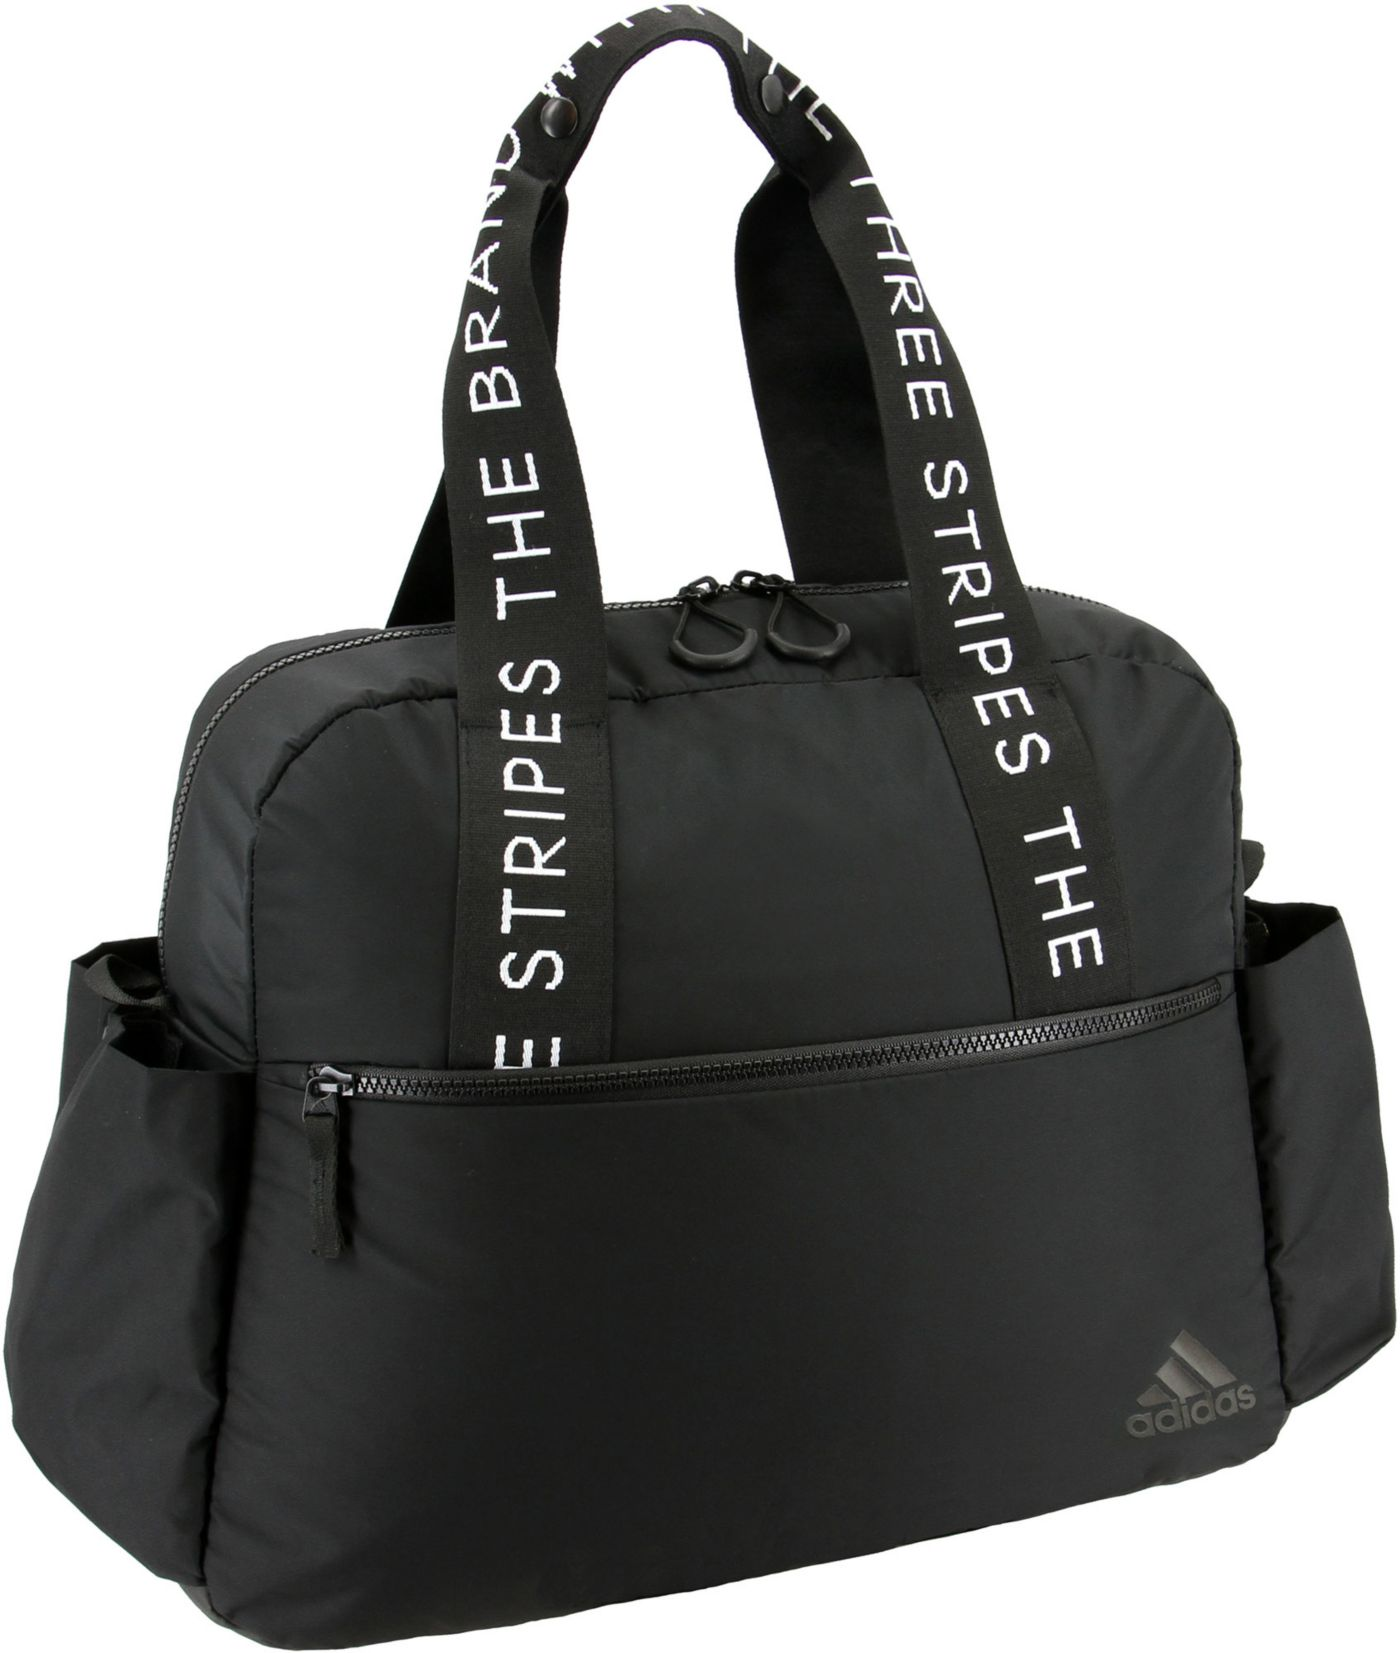 adidas Sport to Street Tote